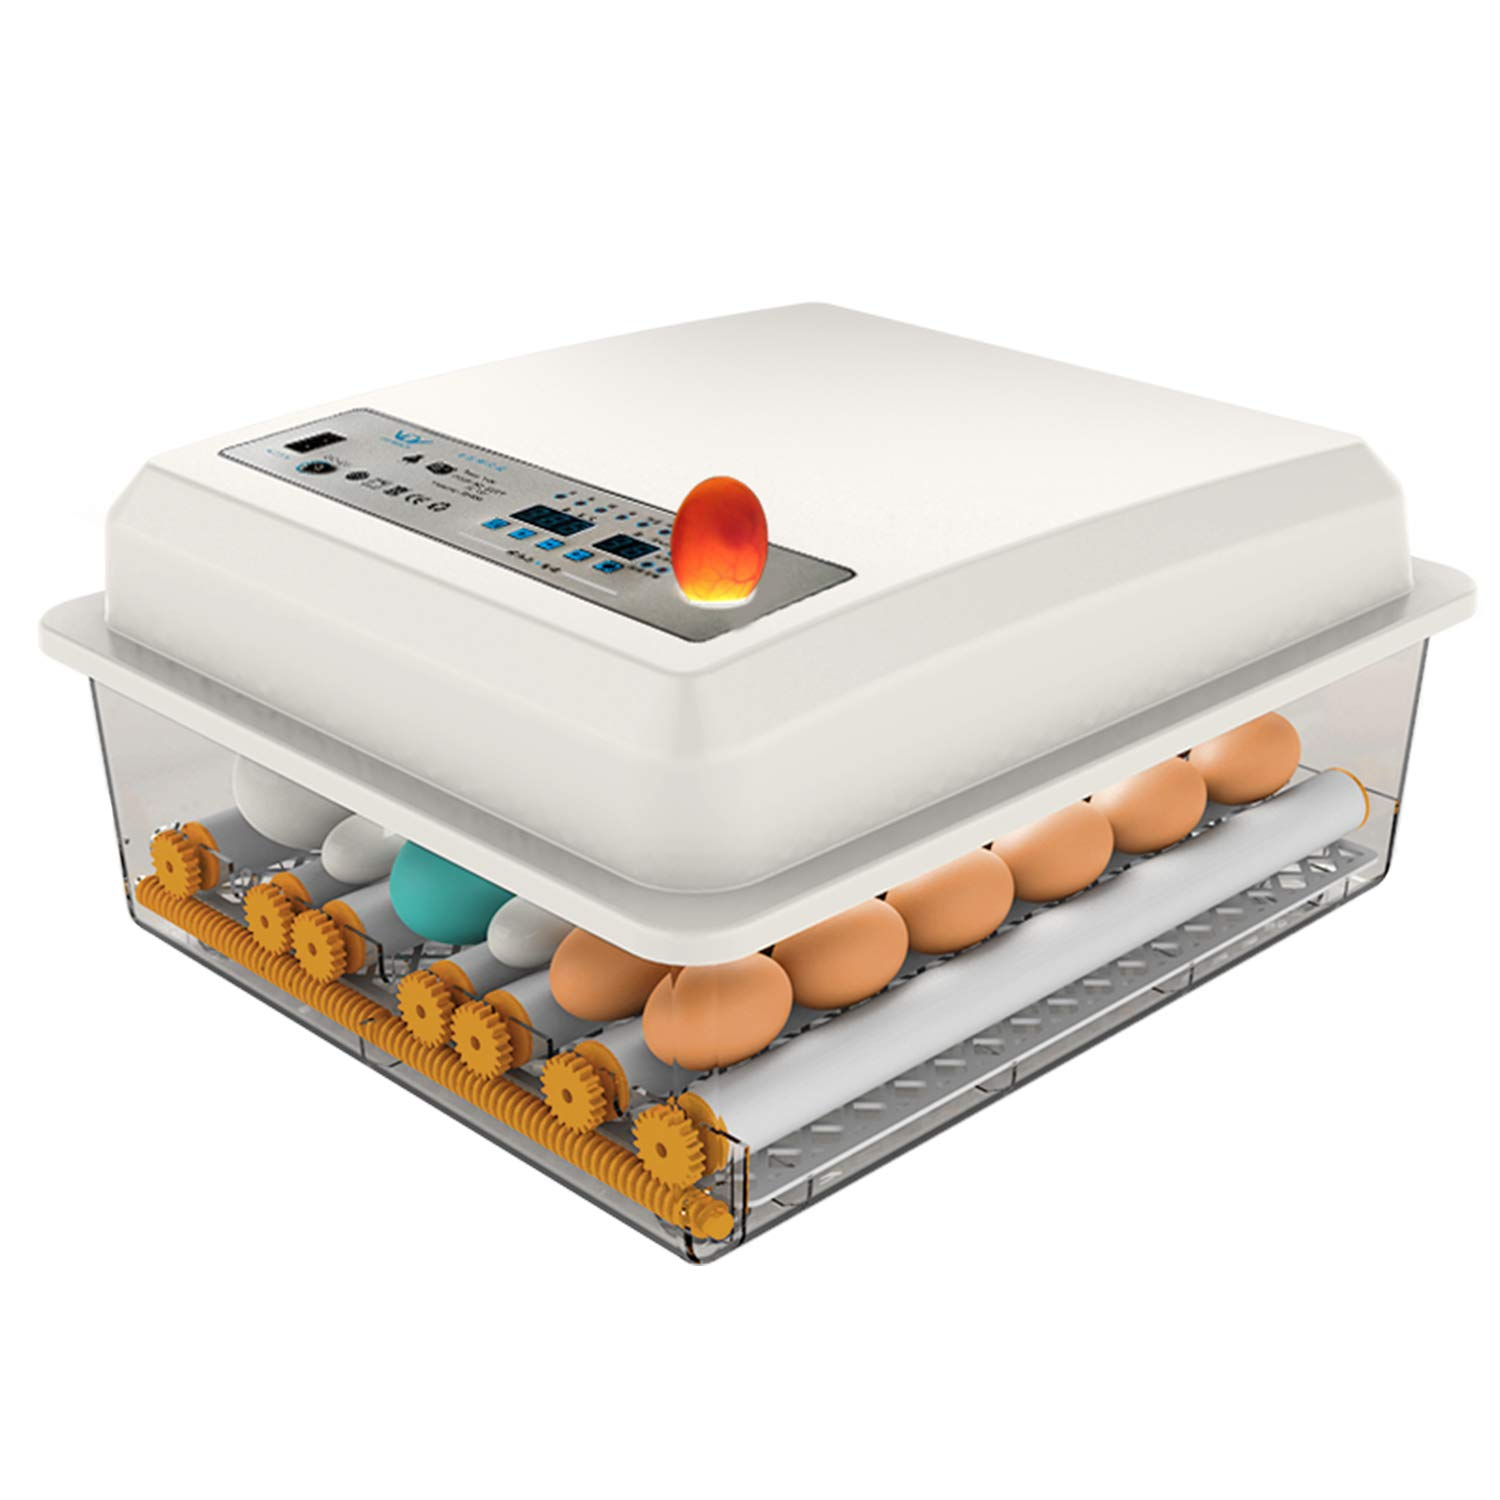 JAEDO Automatic Max 88% OFF Egg Incubator 54~64 Poultry Hatcher Eggs with Al sold out. Au